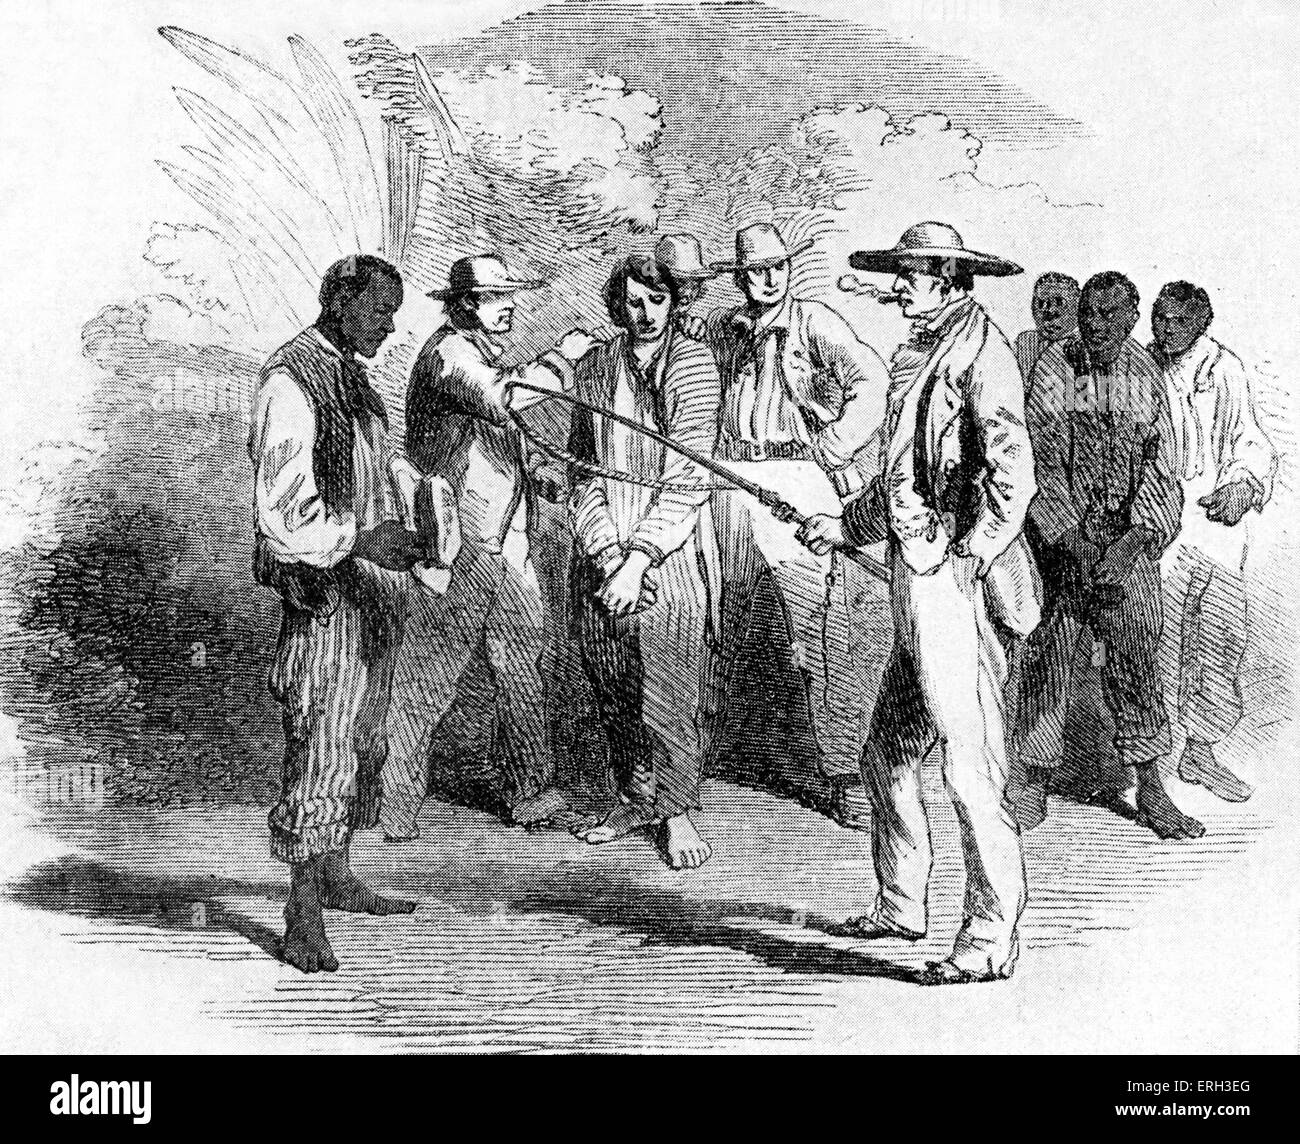 a literary analysis of uncle toms cabin by harriet beecher stowe Harriet beecher stowe's novel uncle tom's cabin is a landmark in two directions it galvanized the antislavery movement at its publication and may have been largely.